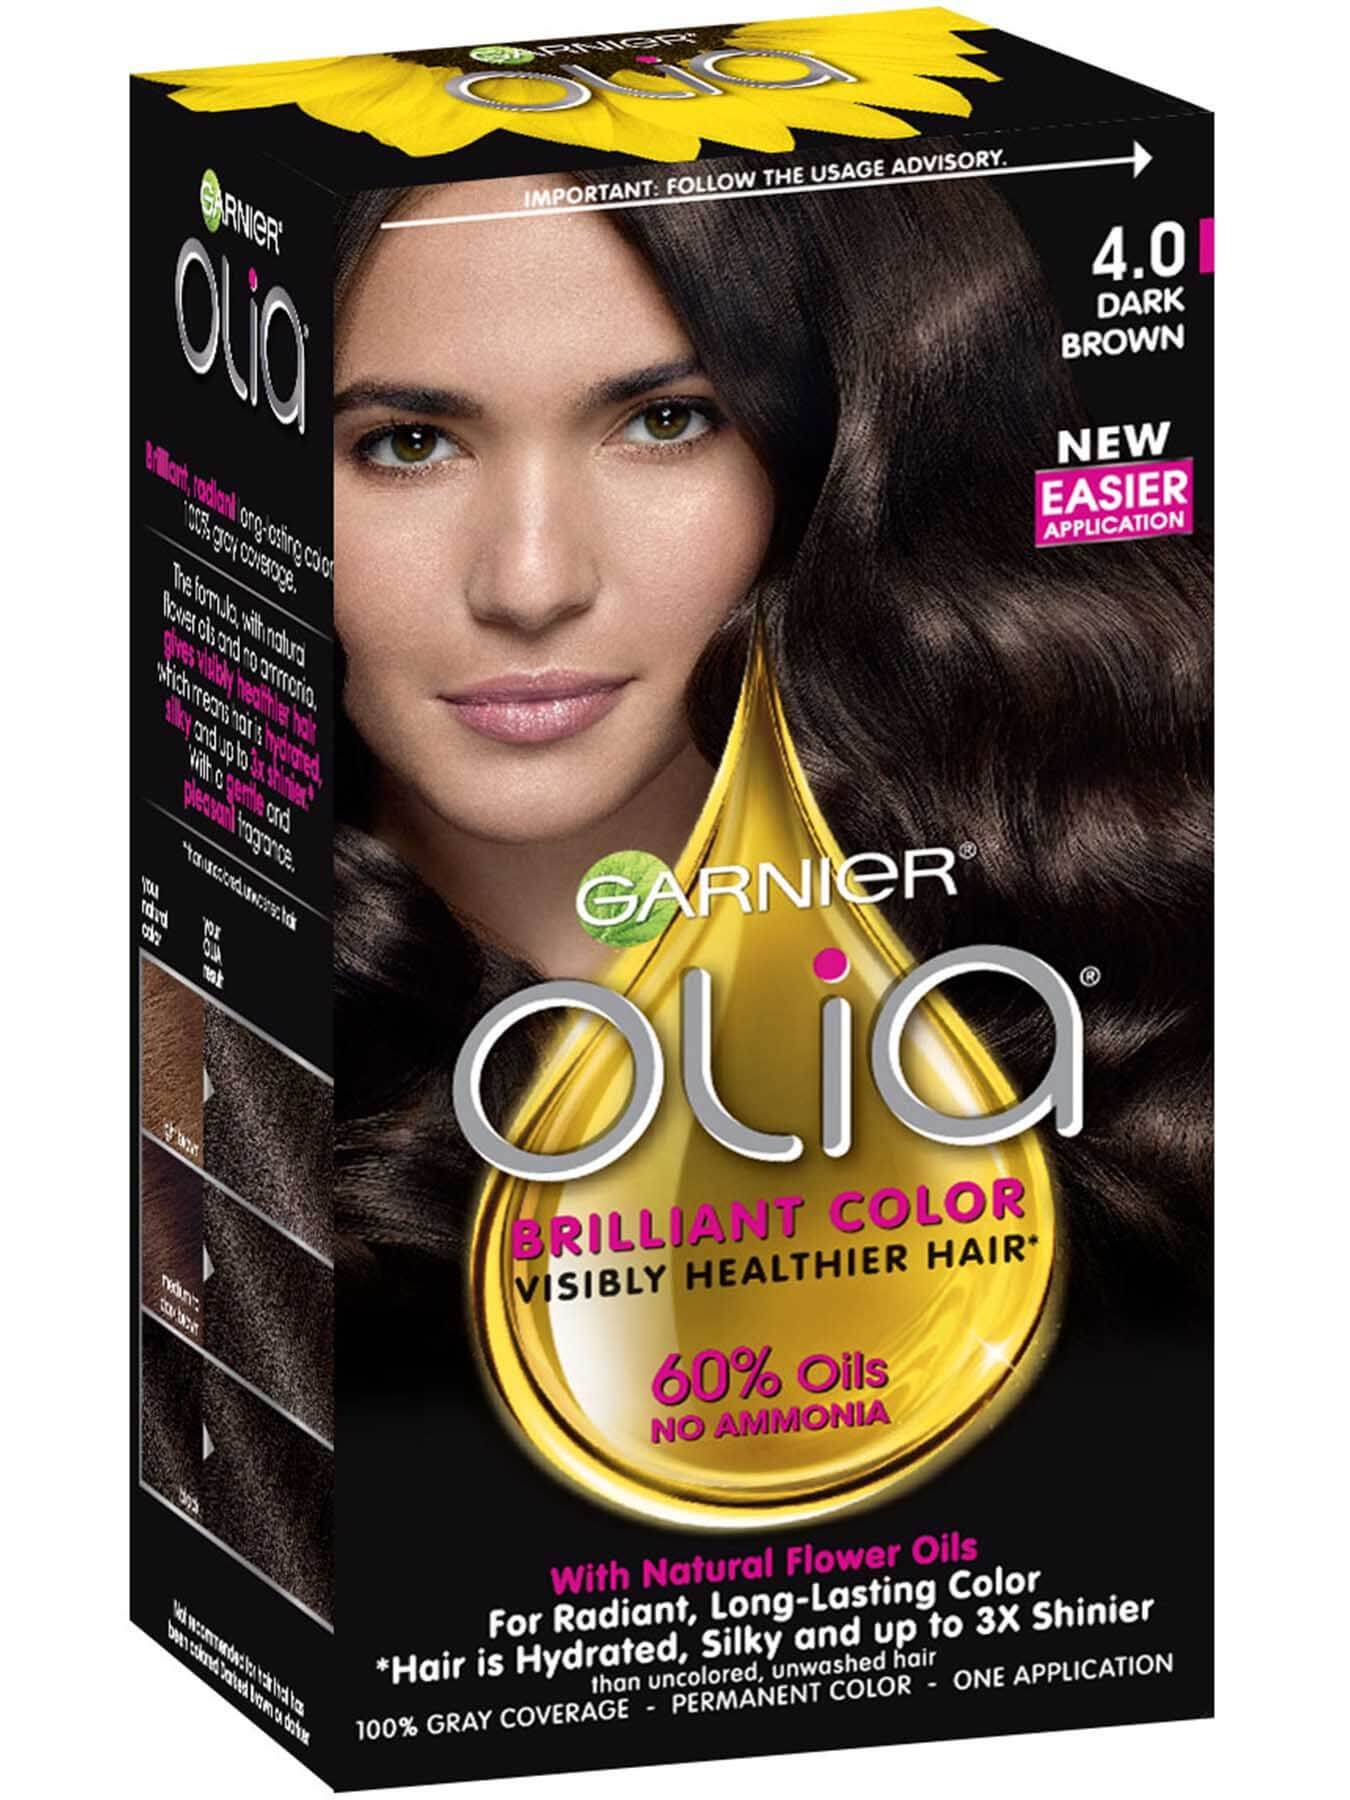 Olia Ammonia Free Permanent Hair Color Dark Brown Garnier